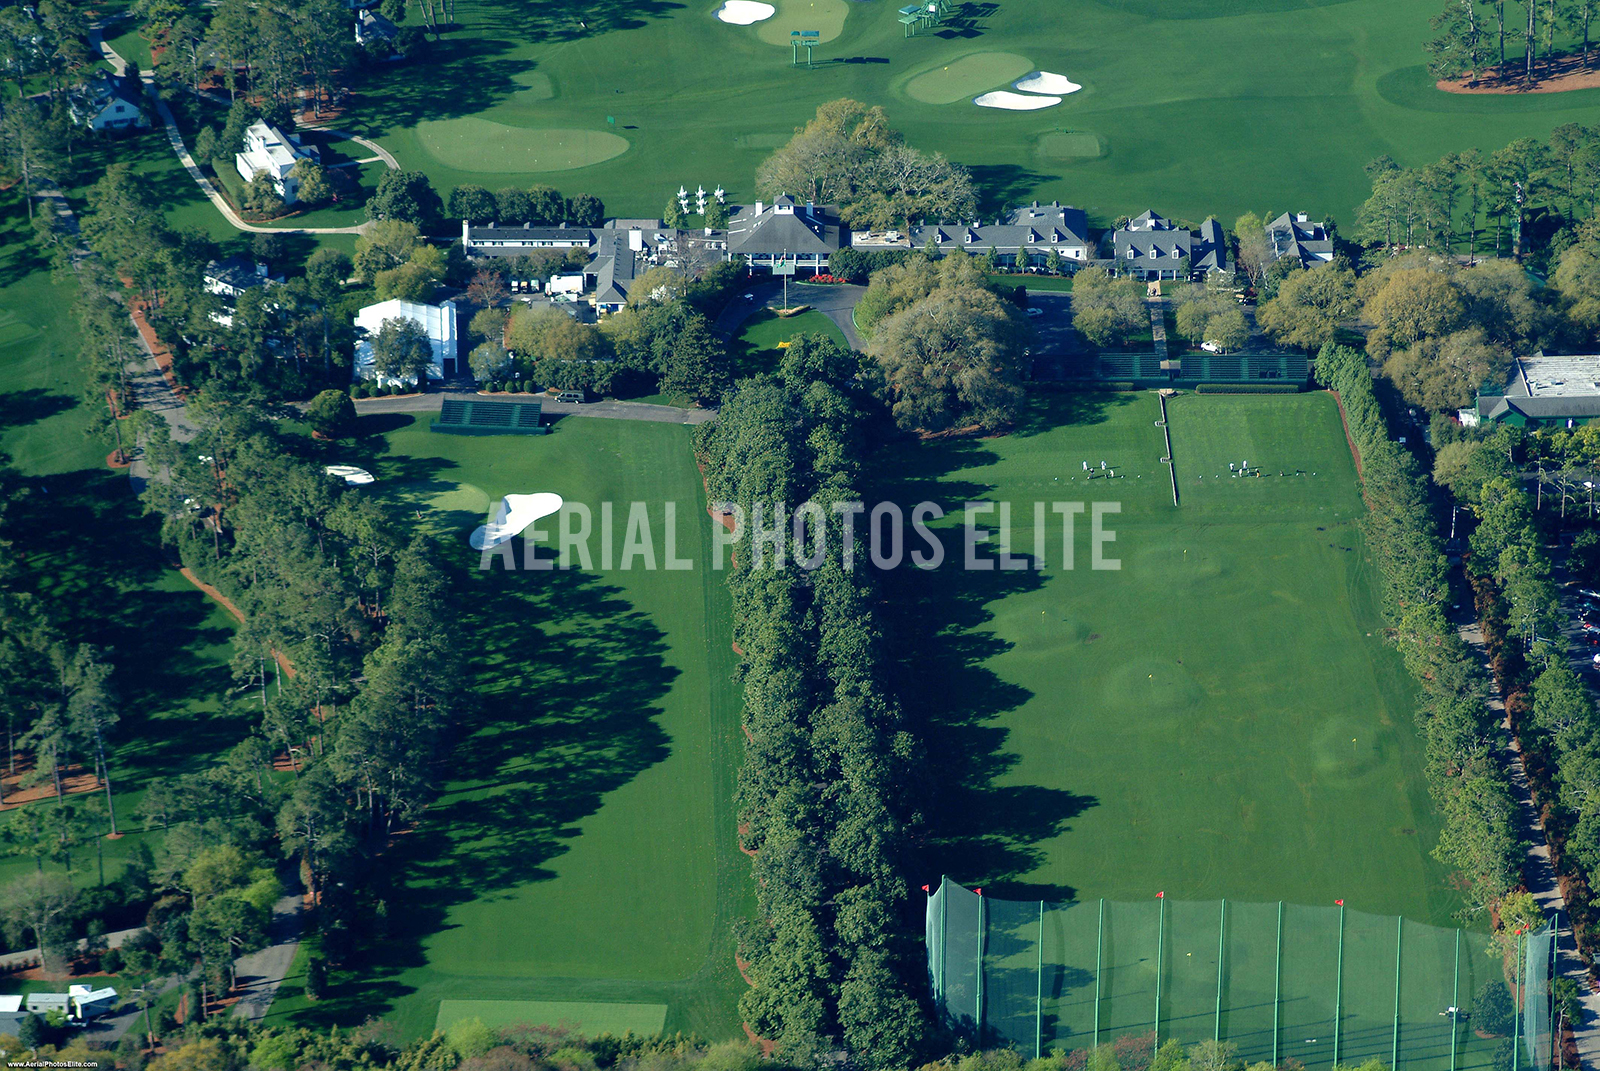 Aerial Photos Elite Augusta National Driving Range Clubhouse Augusta GA | Aerial Photos Elite